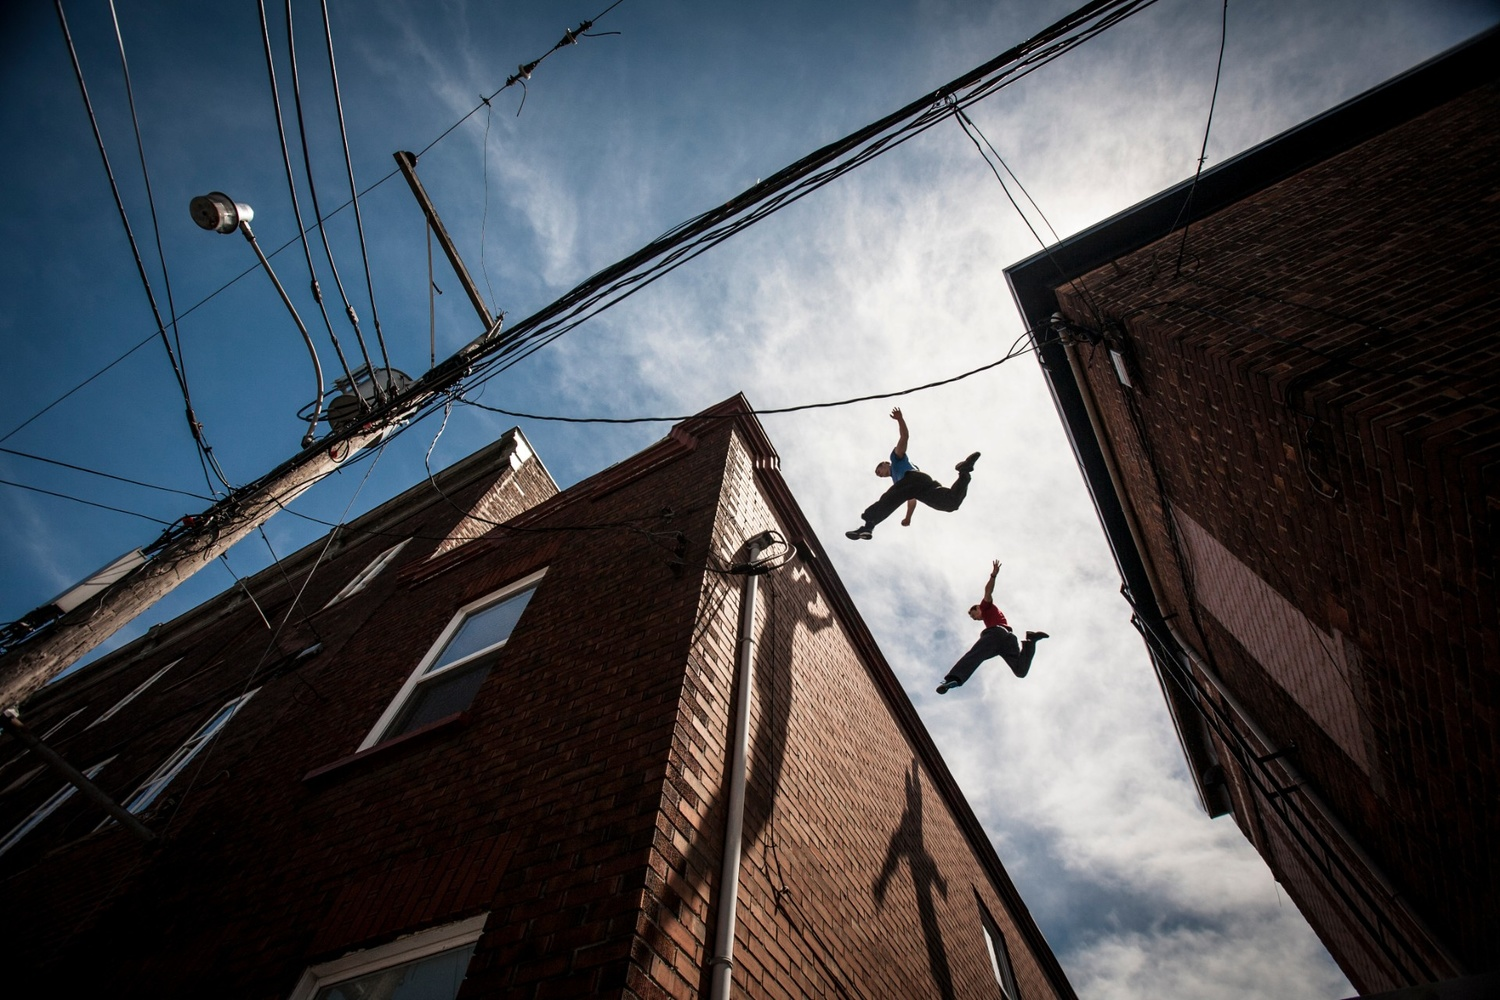 professional sports photography of parkour athletes jumping over rooftops